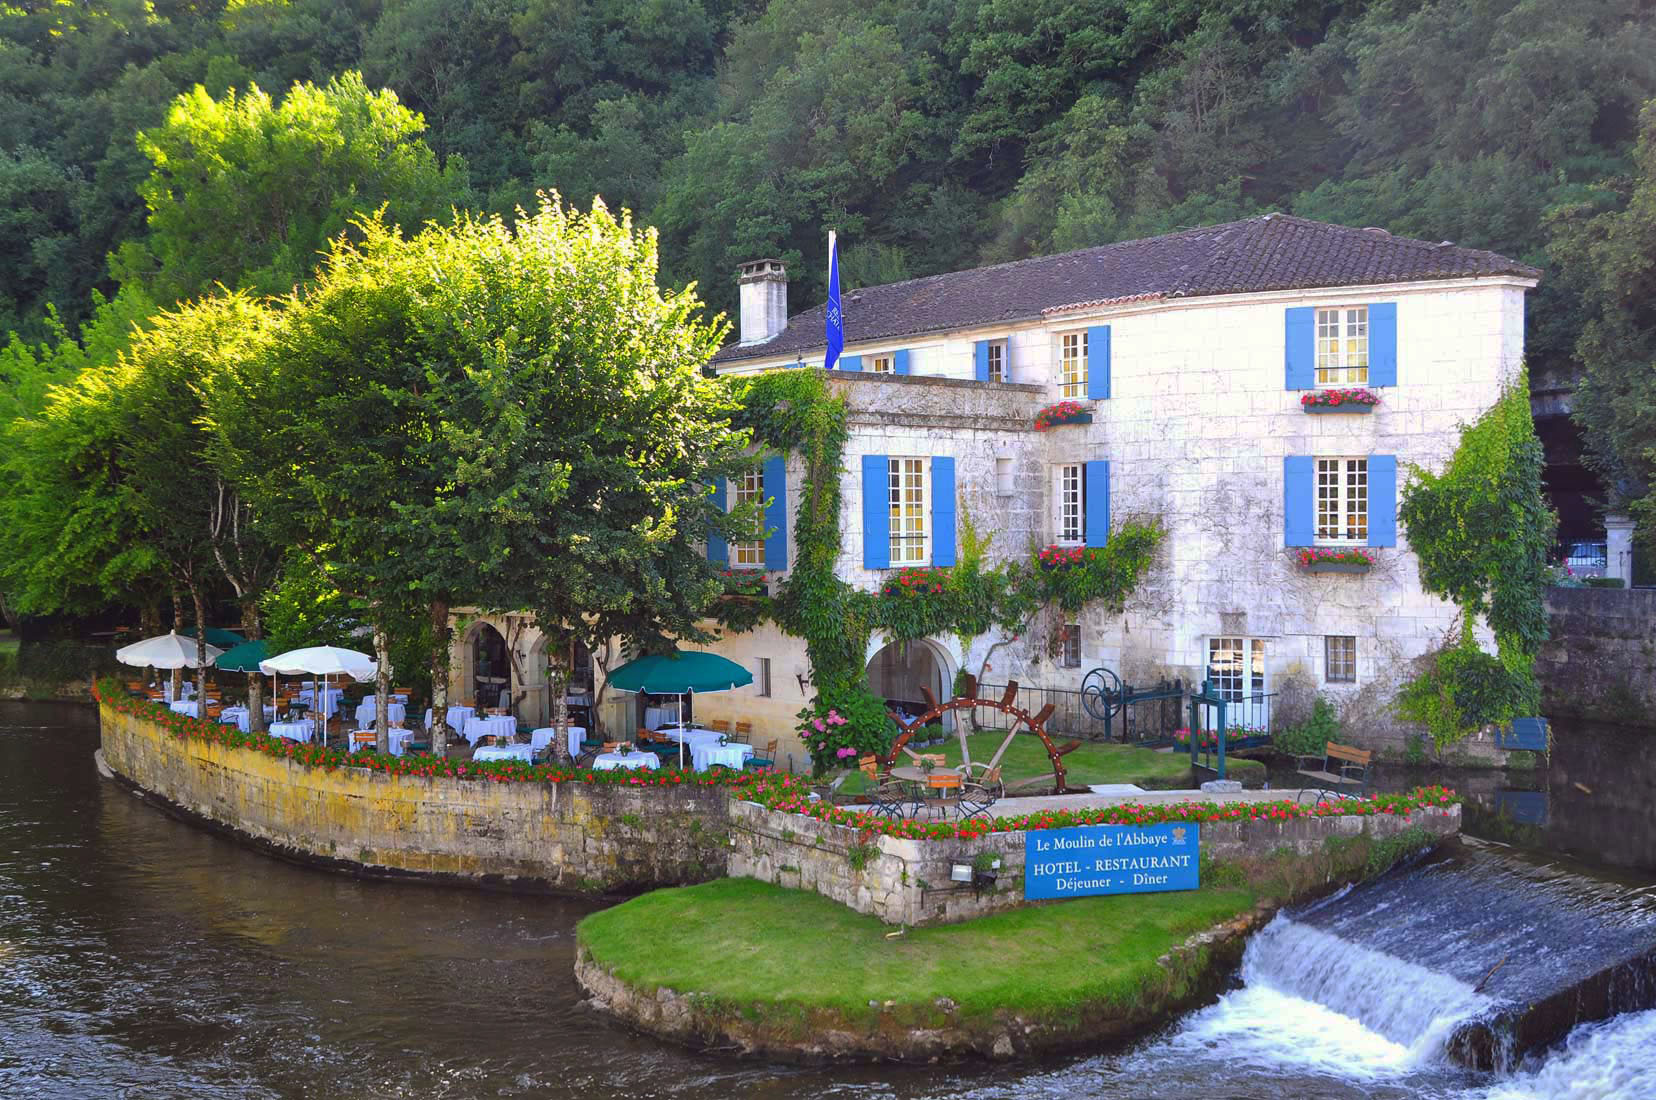 Le moulin de l 39 abbaye a charming french village hotel in for Hotels design en france